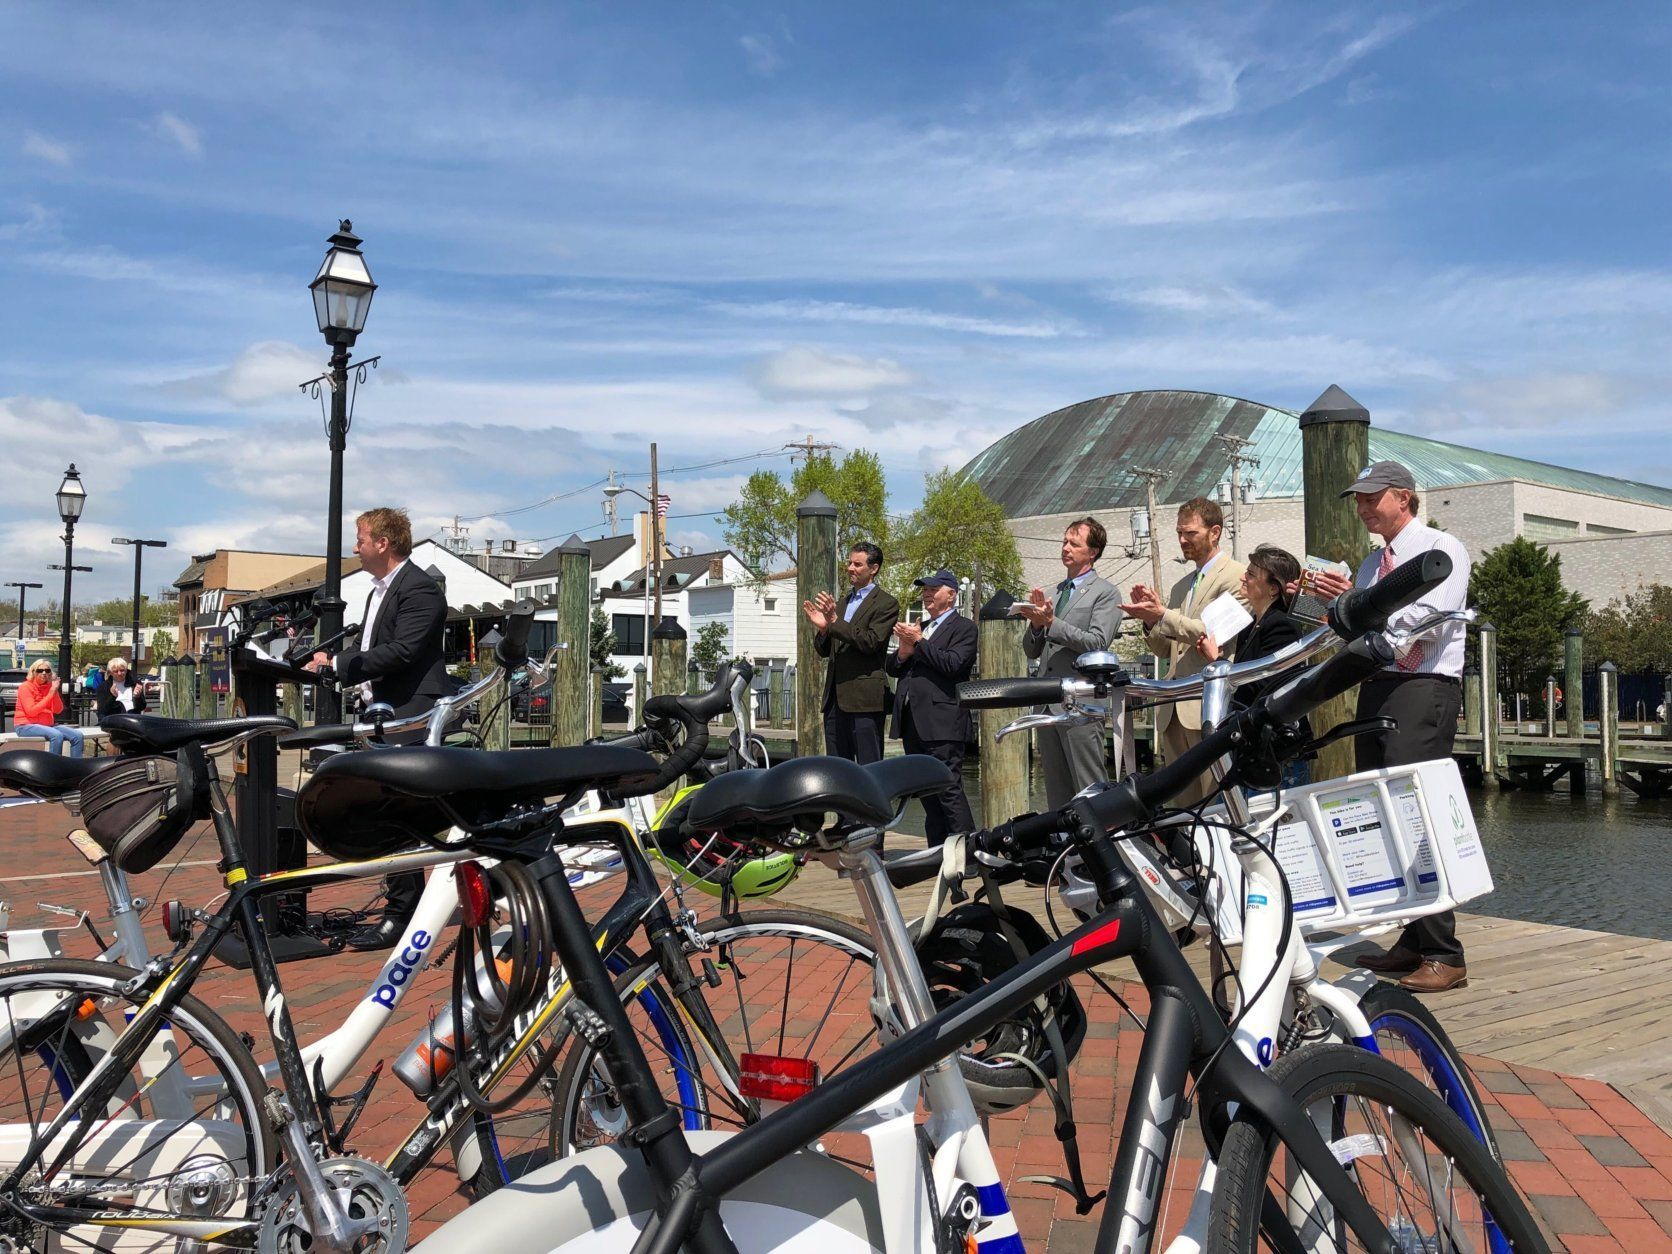 Some of the participants at the Earth Day event in Annapolis took Bikes down to the waterfront for the afternoon. (WTOP/Kate Ryan)